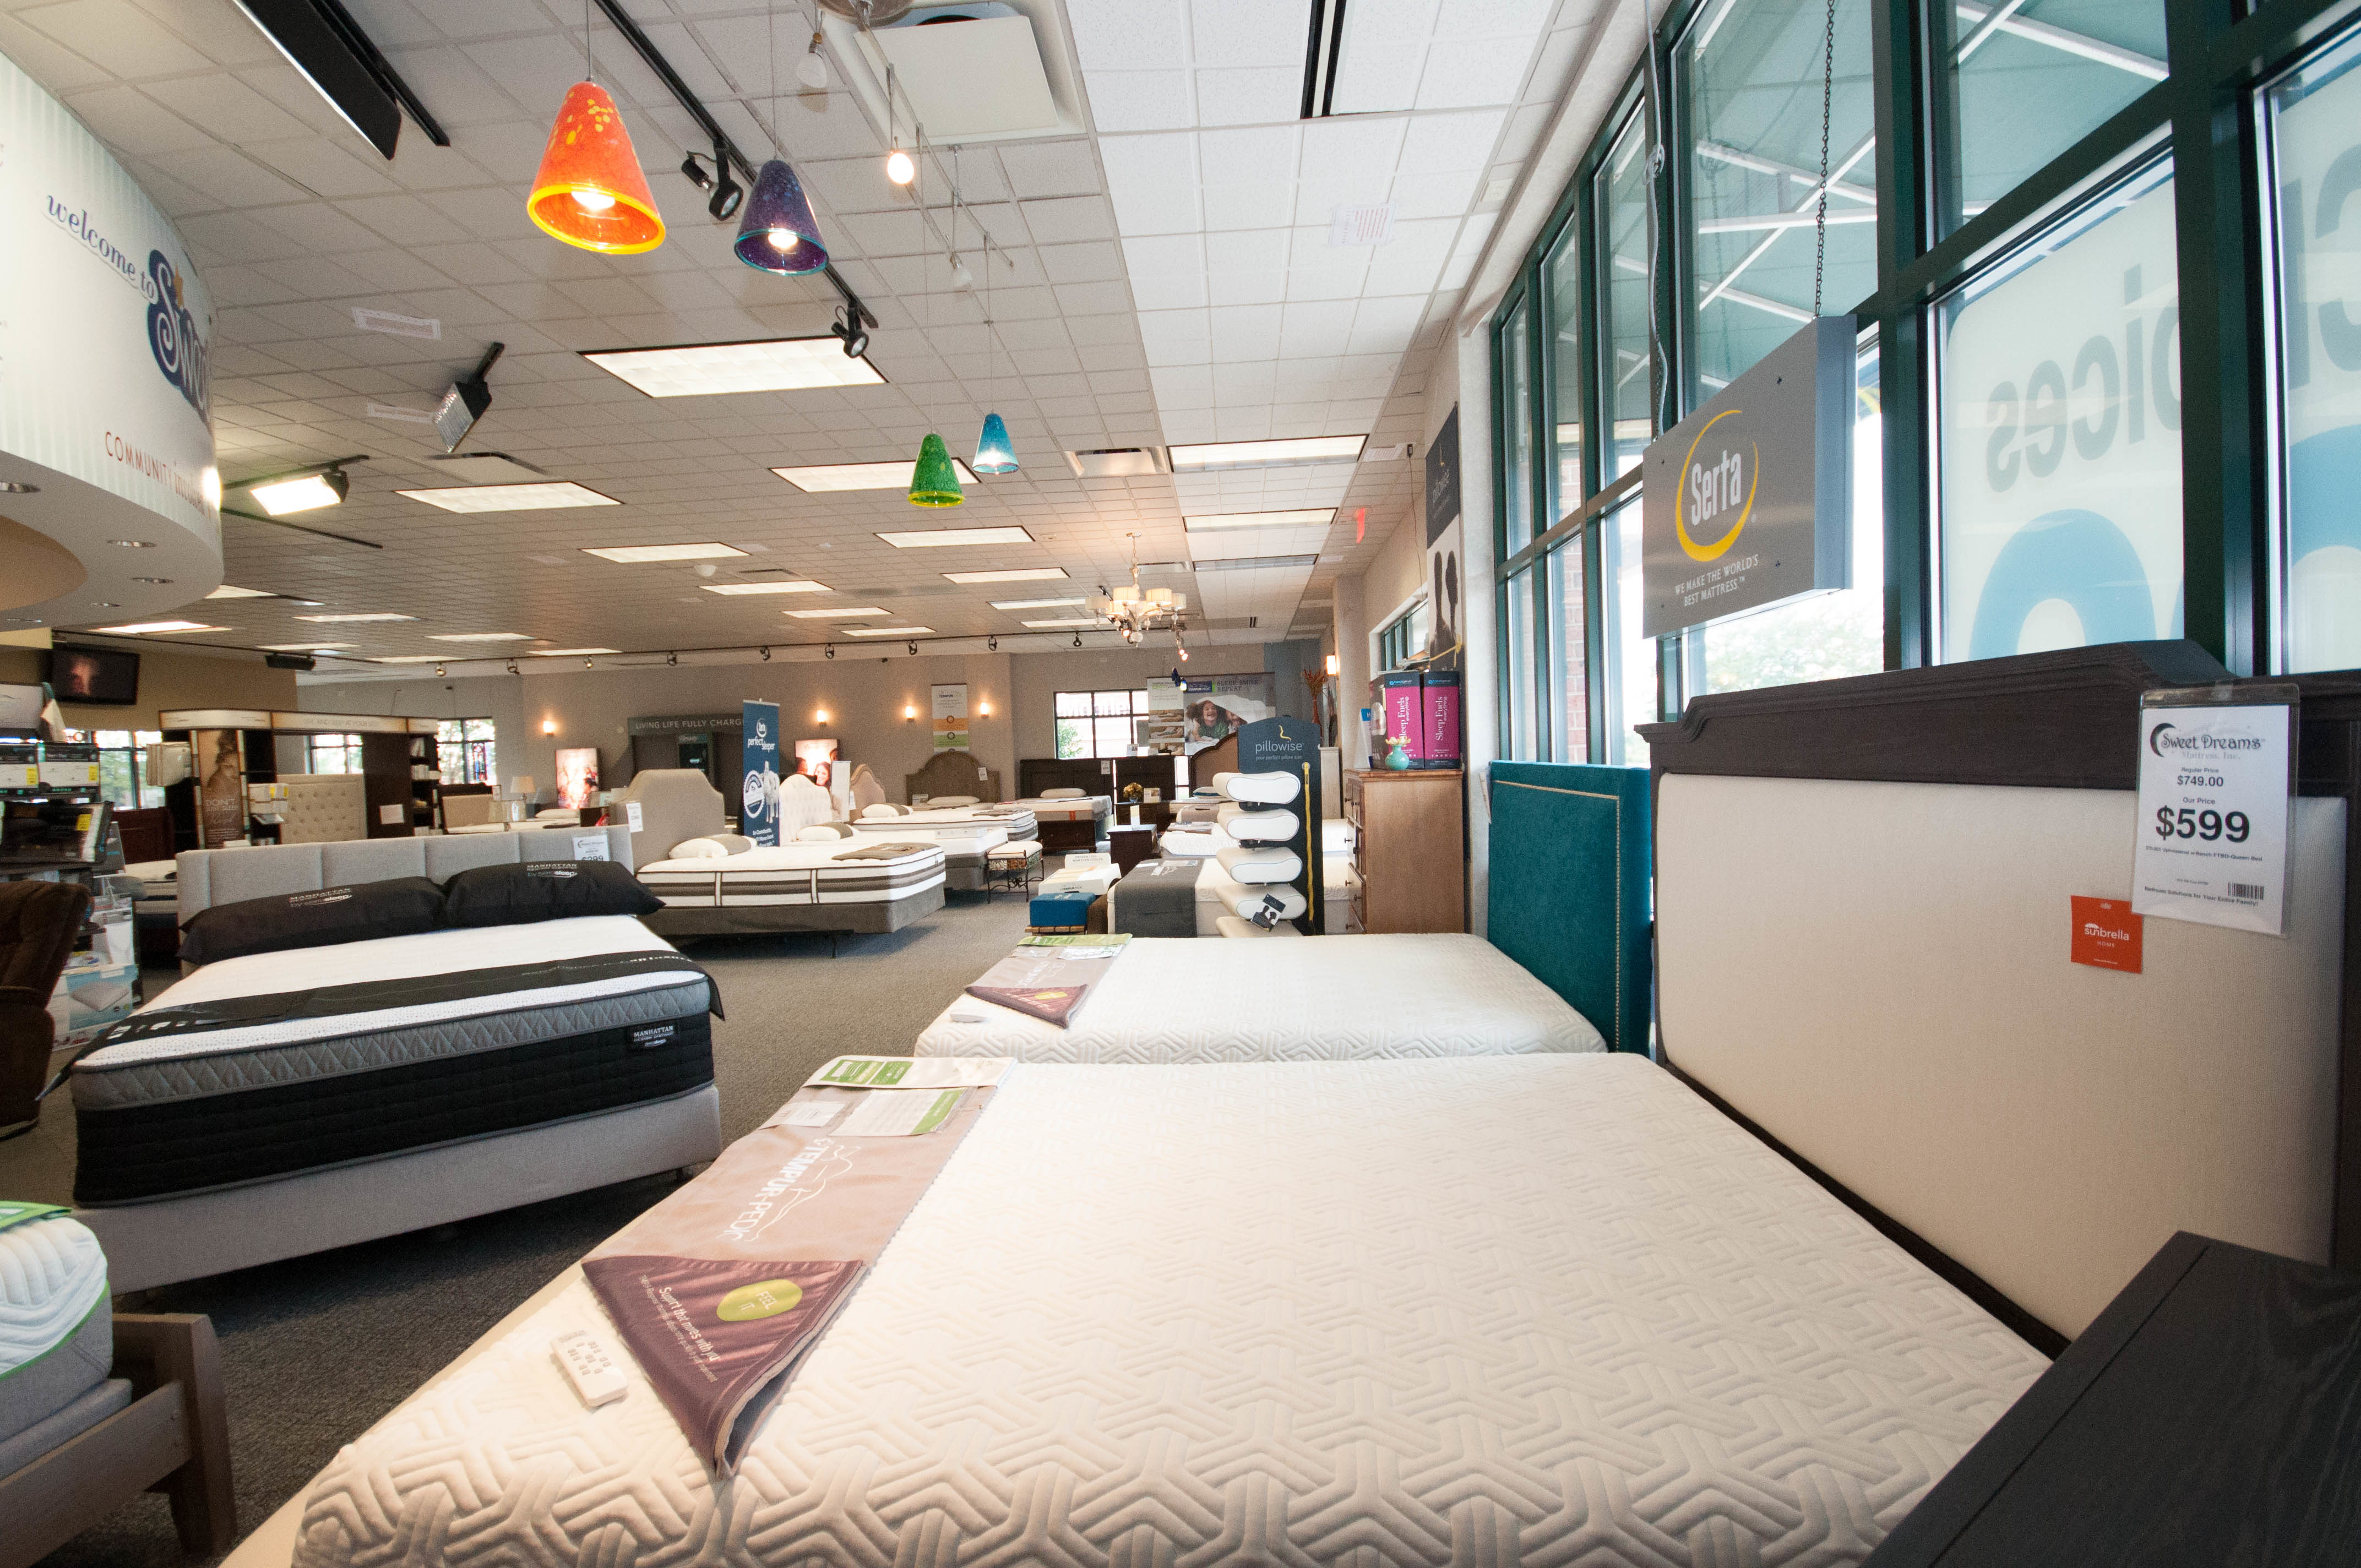 Sweet Dreams Mattress Furniture Outlet Coupons Near Me In Mooresville 8coupons